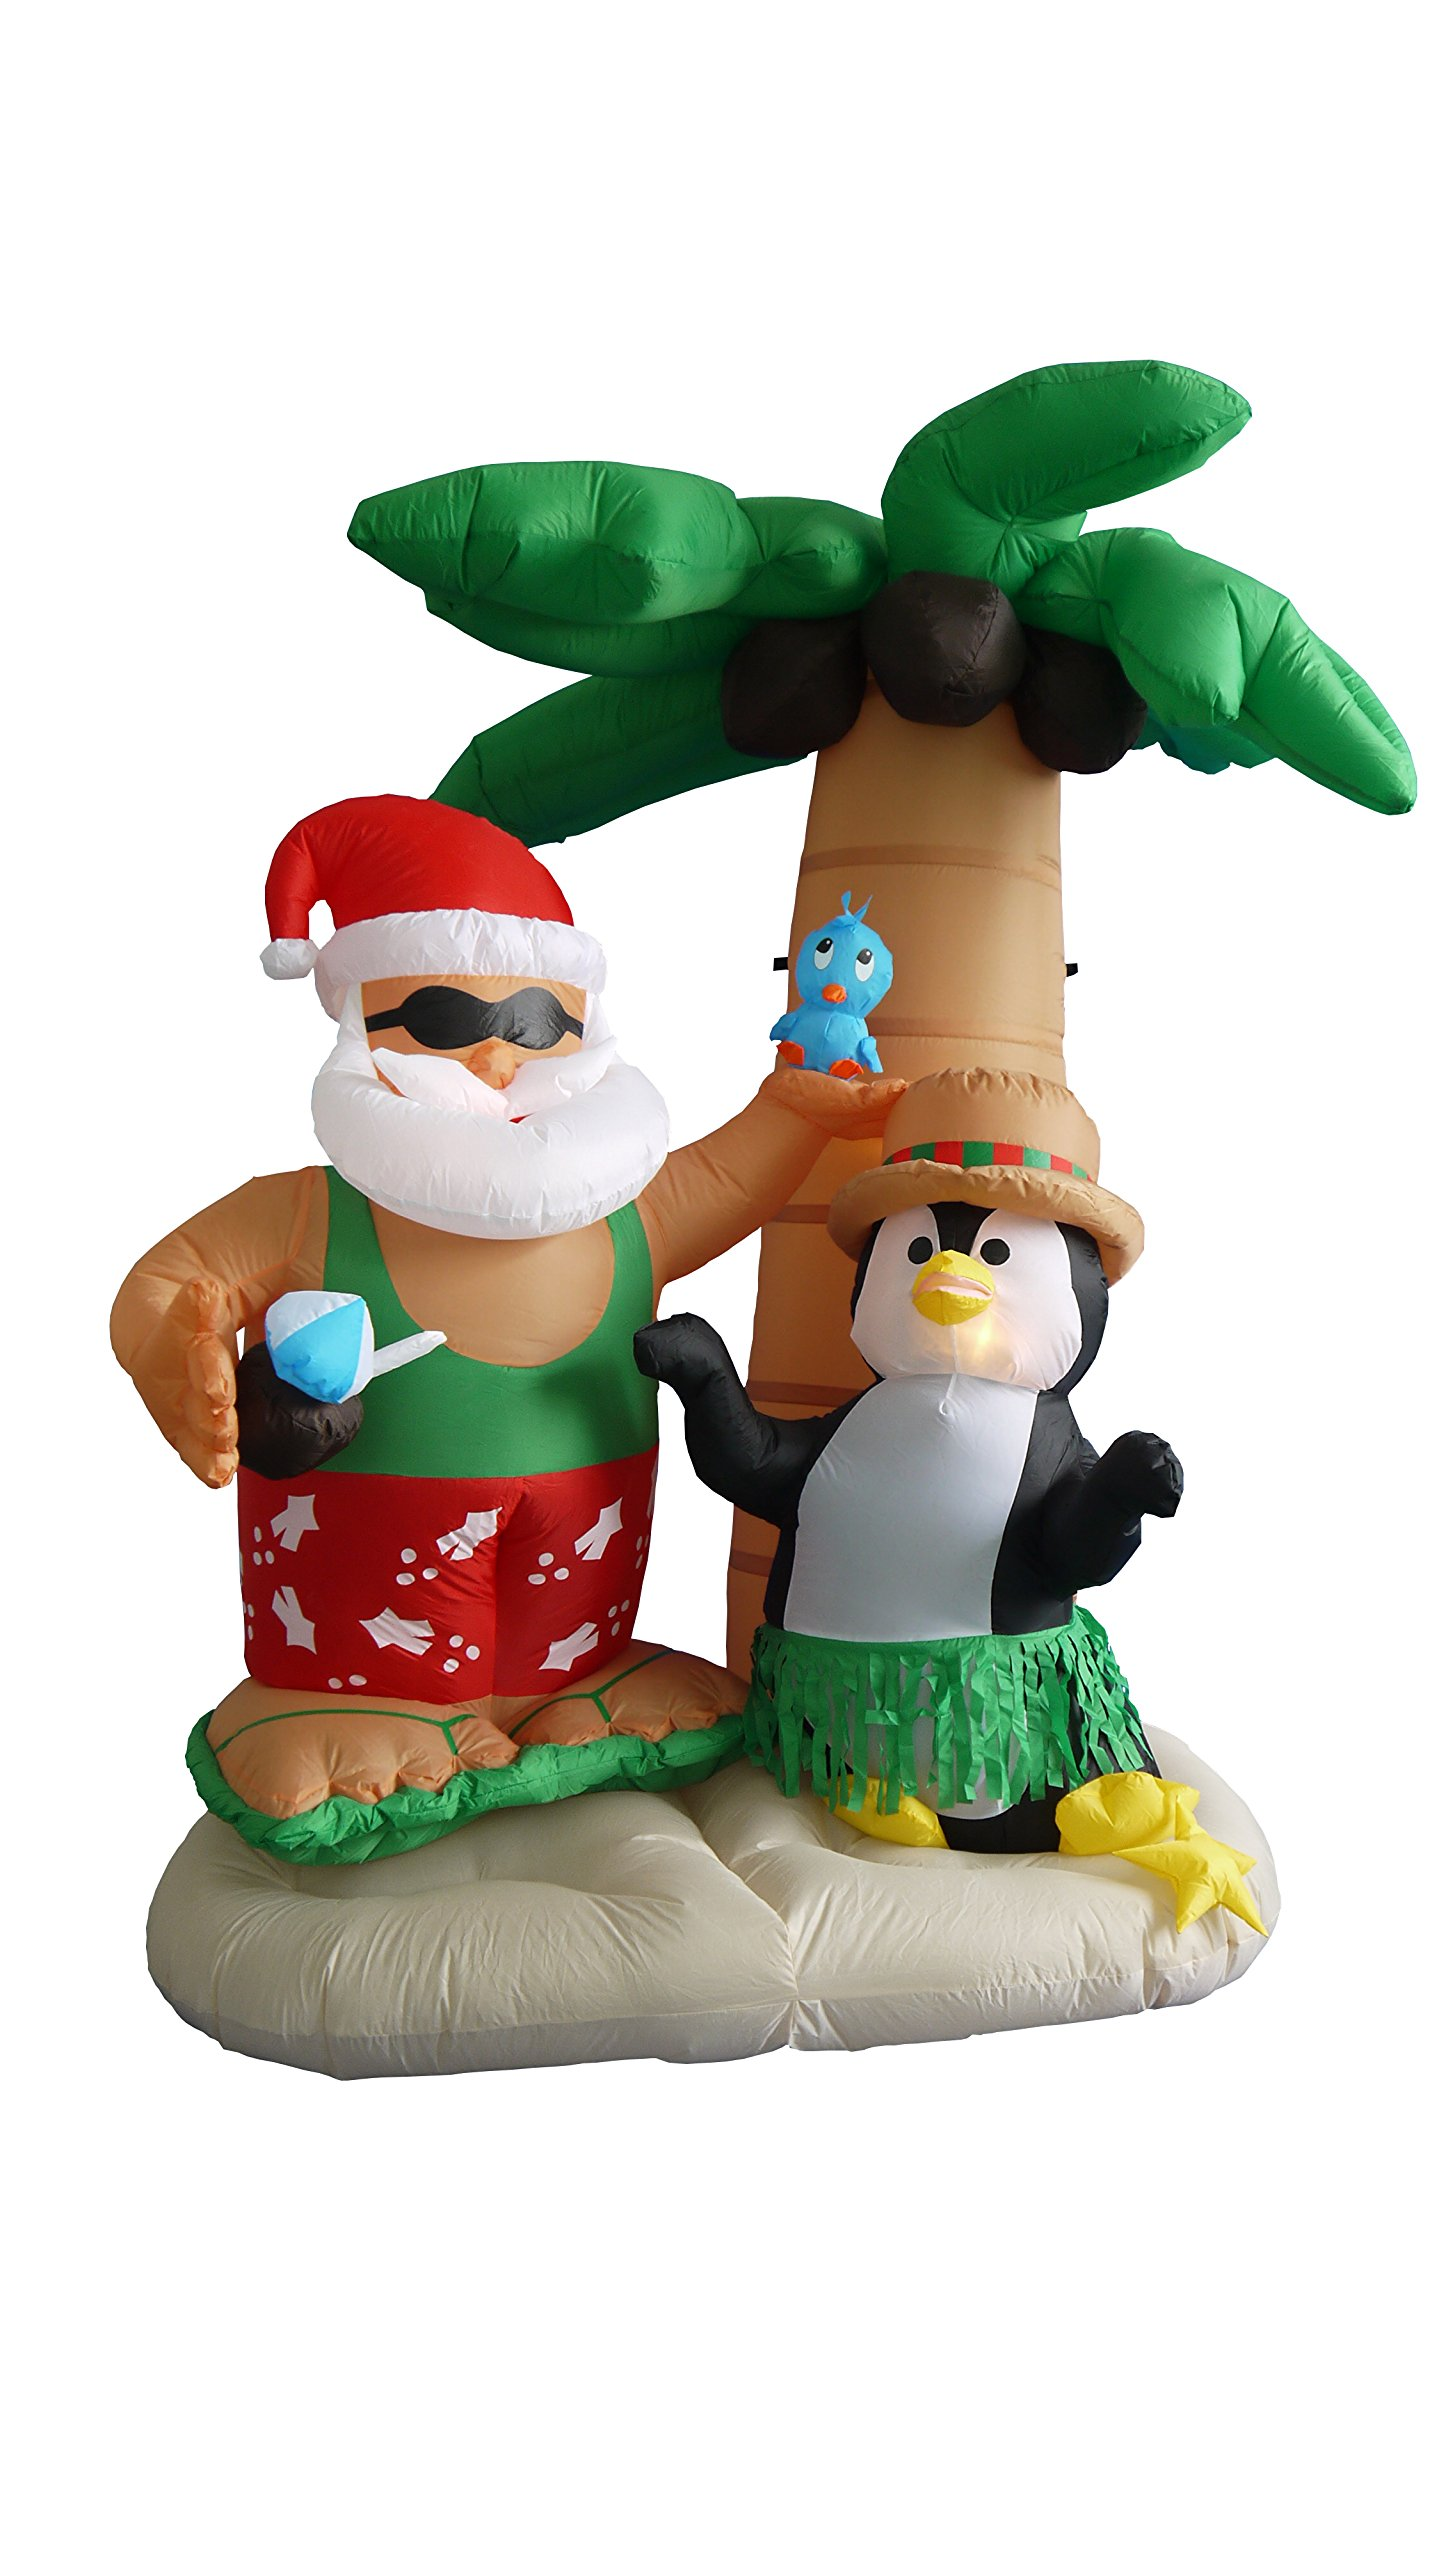 7 Foot Inflatable Santa Claus & Penguin on an Island w/ Palm Tree by BZB Goods